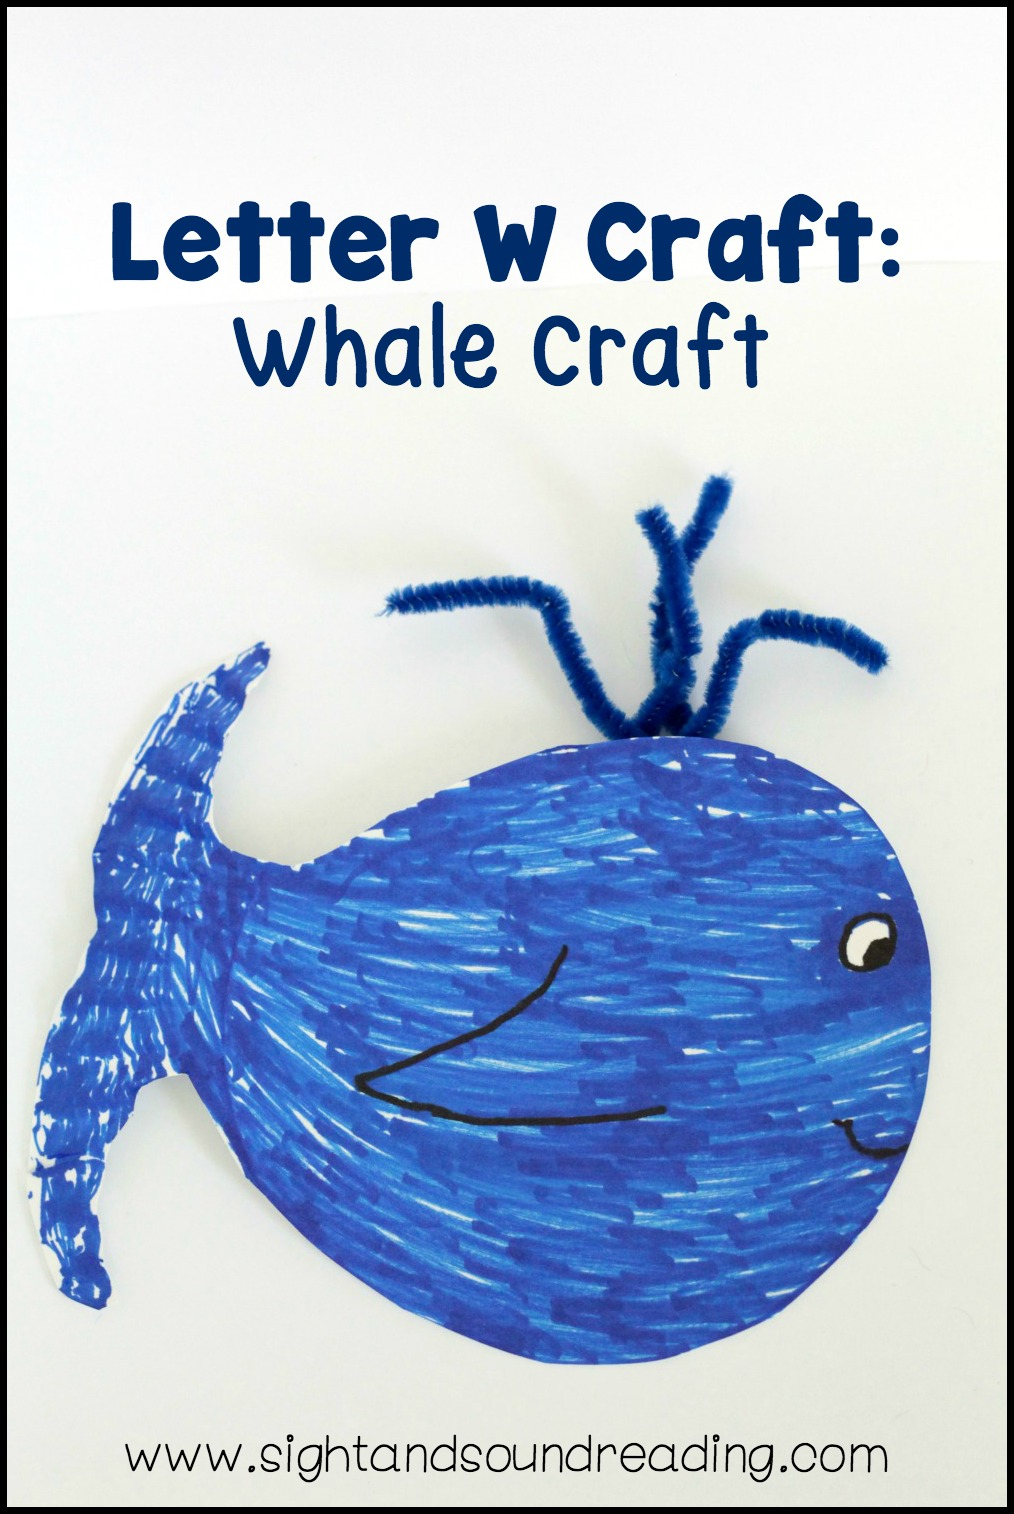 When it comes to learning the letter W, the whale is the first animal that comes to mind for the letter W Craft. Whales are tons of fun.